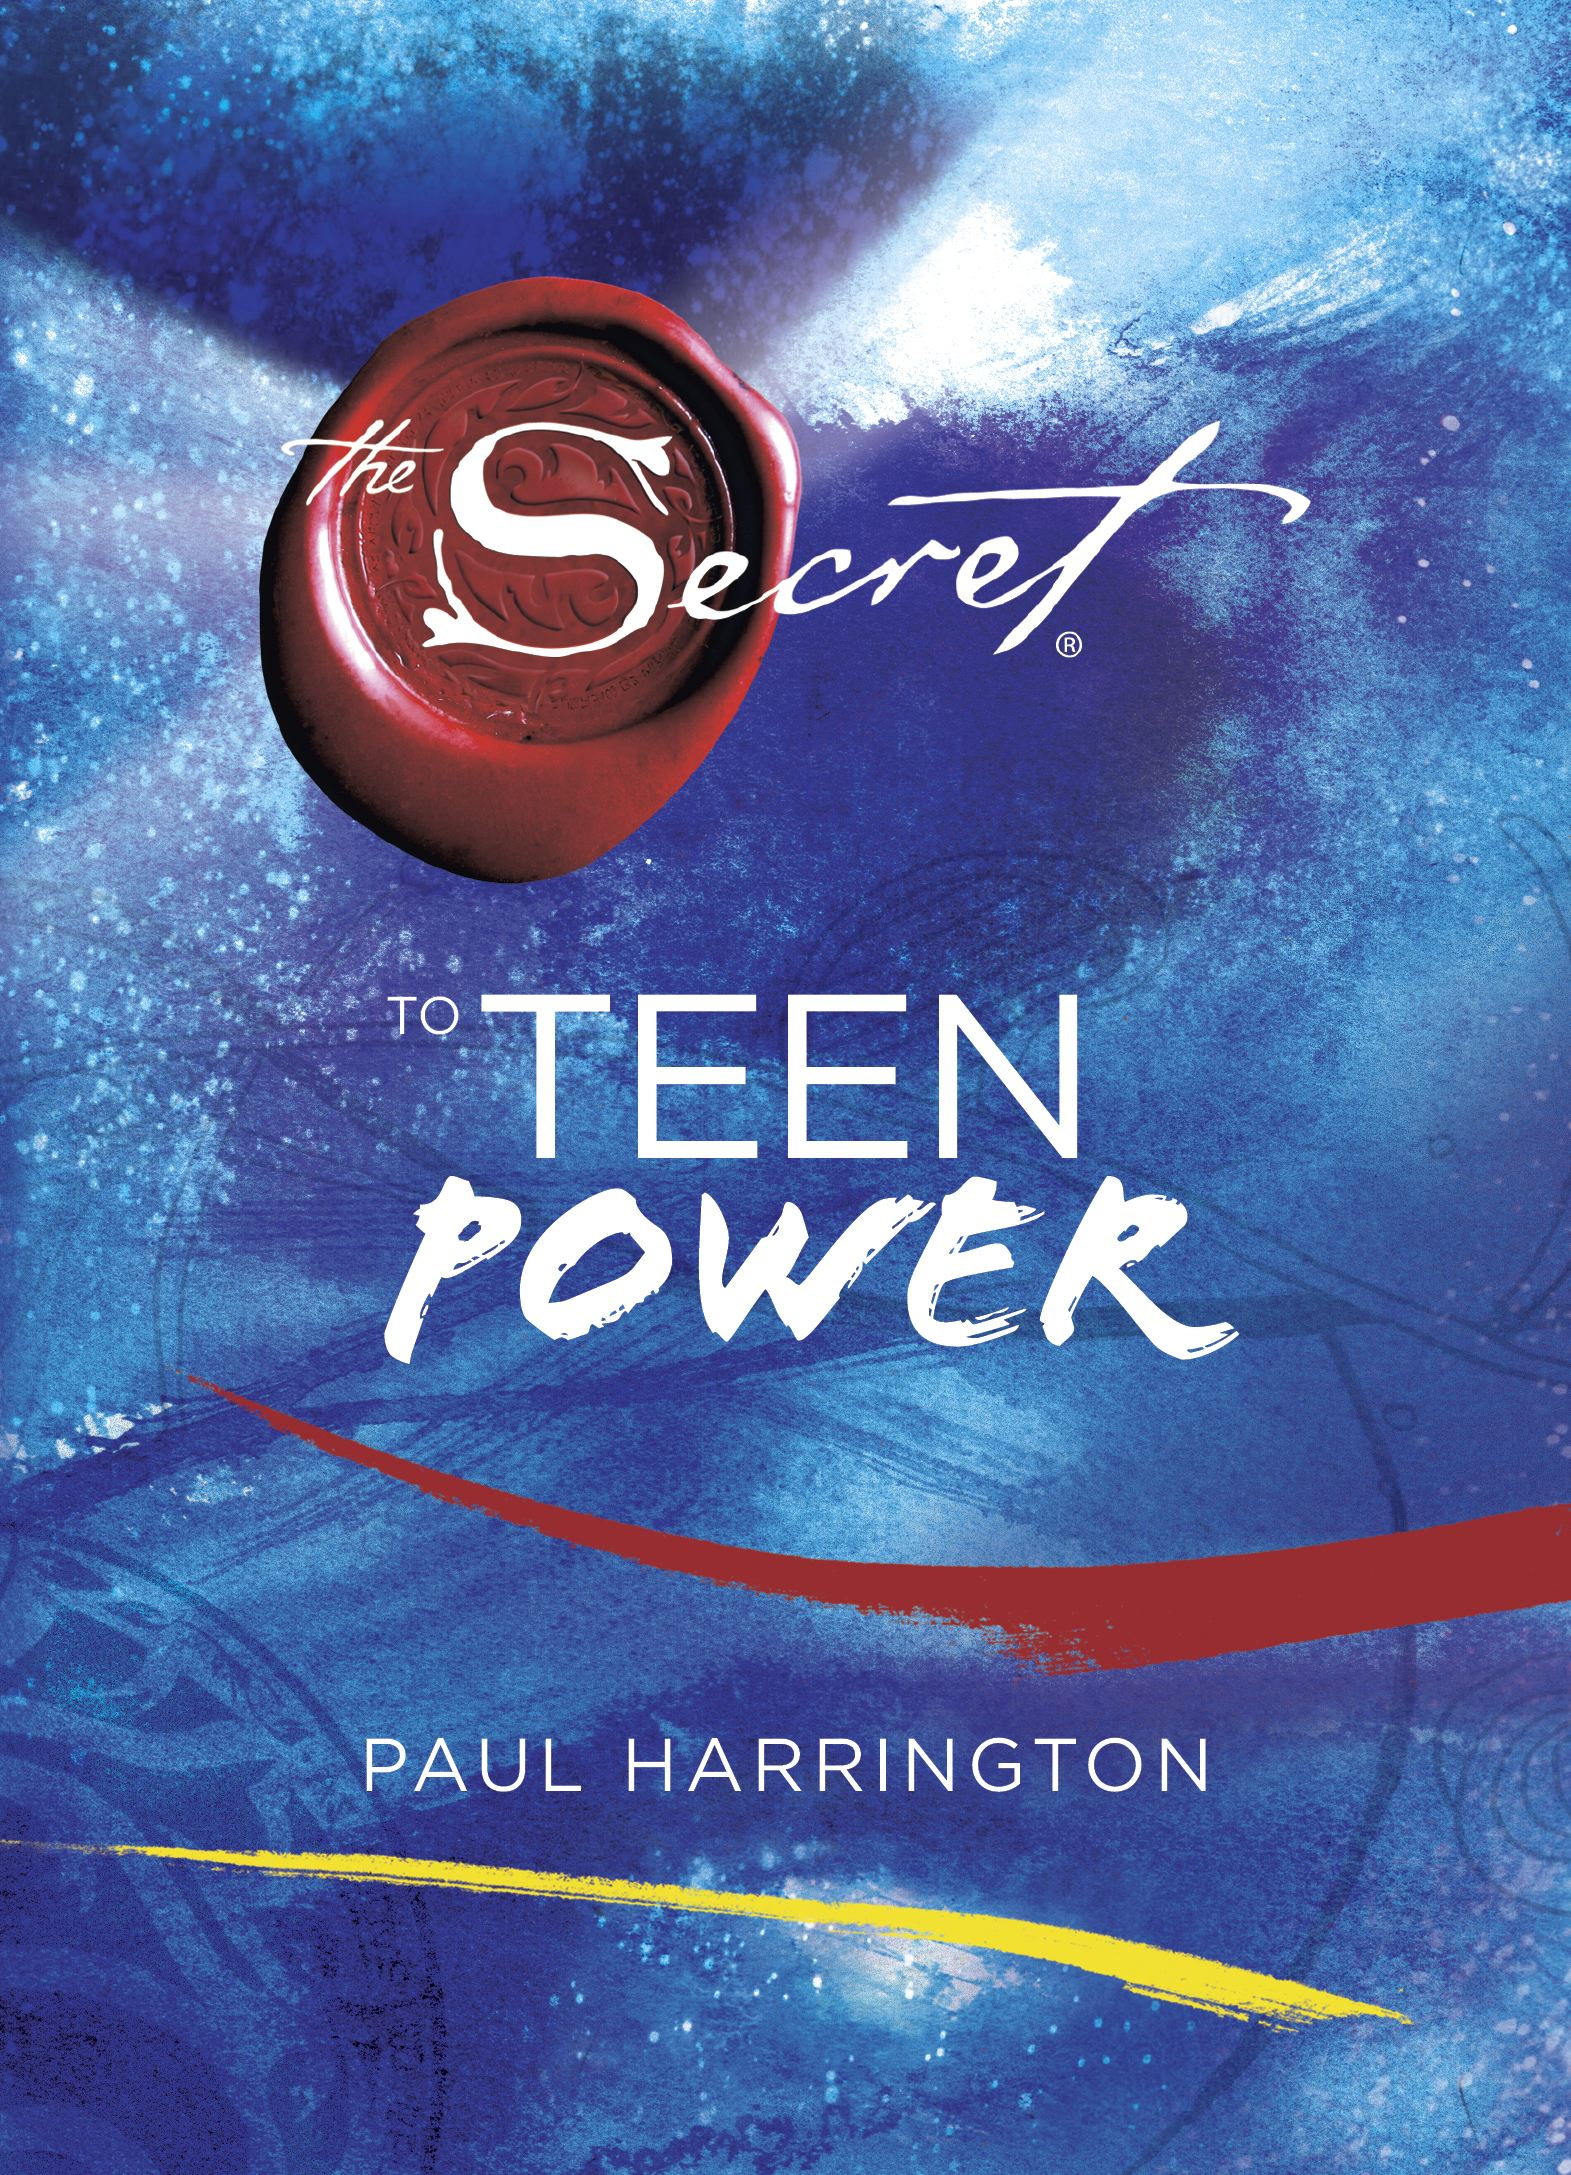 The Secret The Power Pdf